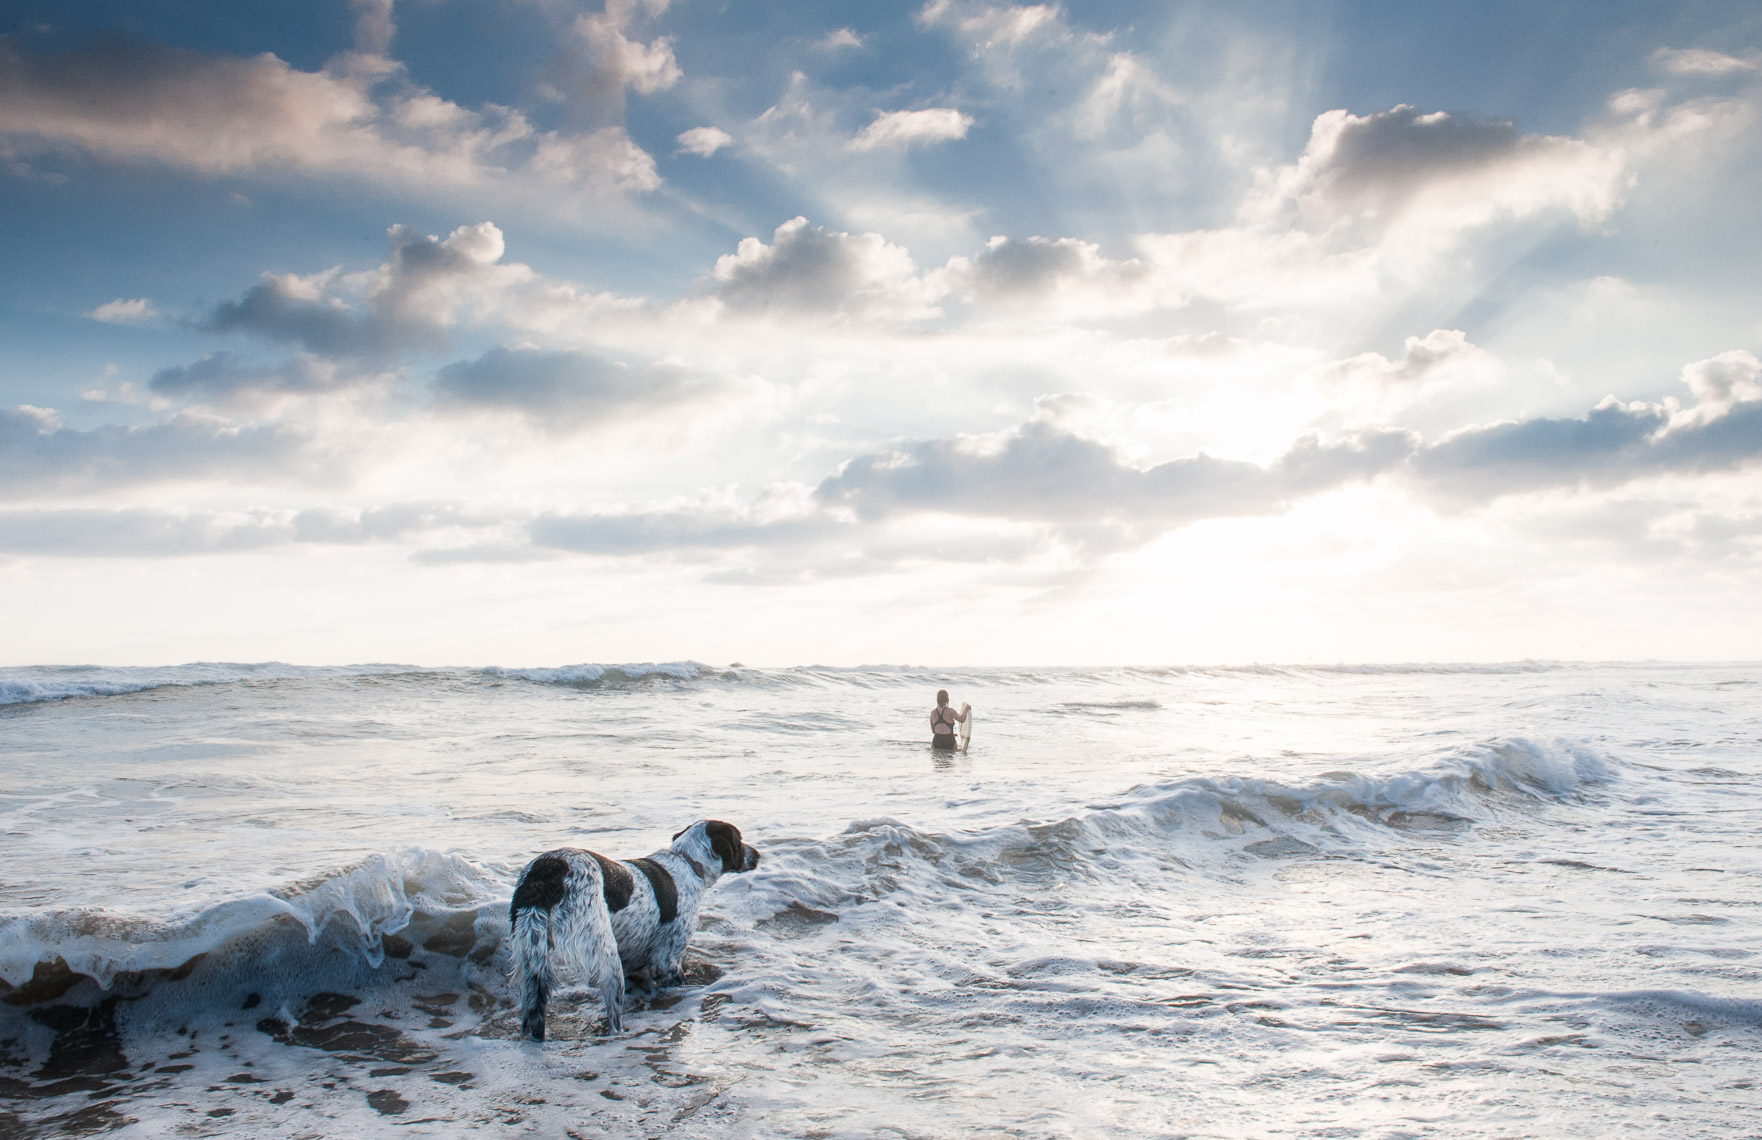 Kevin Steele - A dog looks out toward a woman in the surf